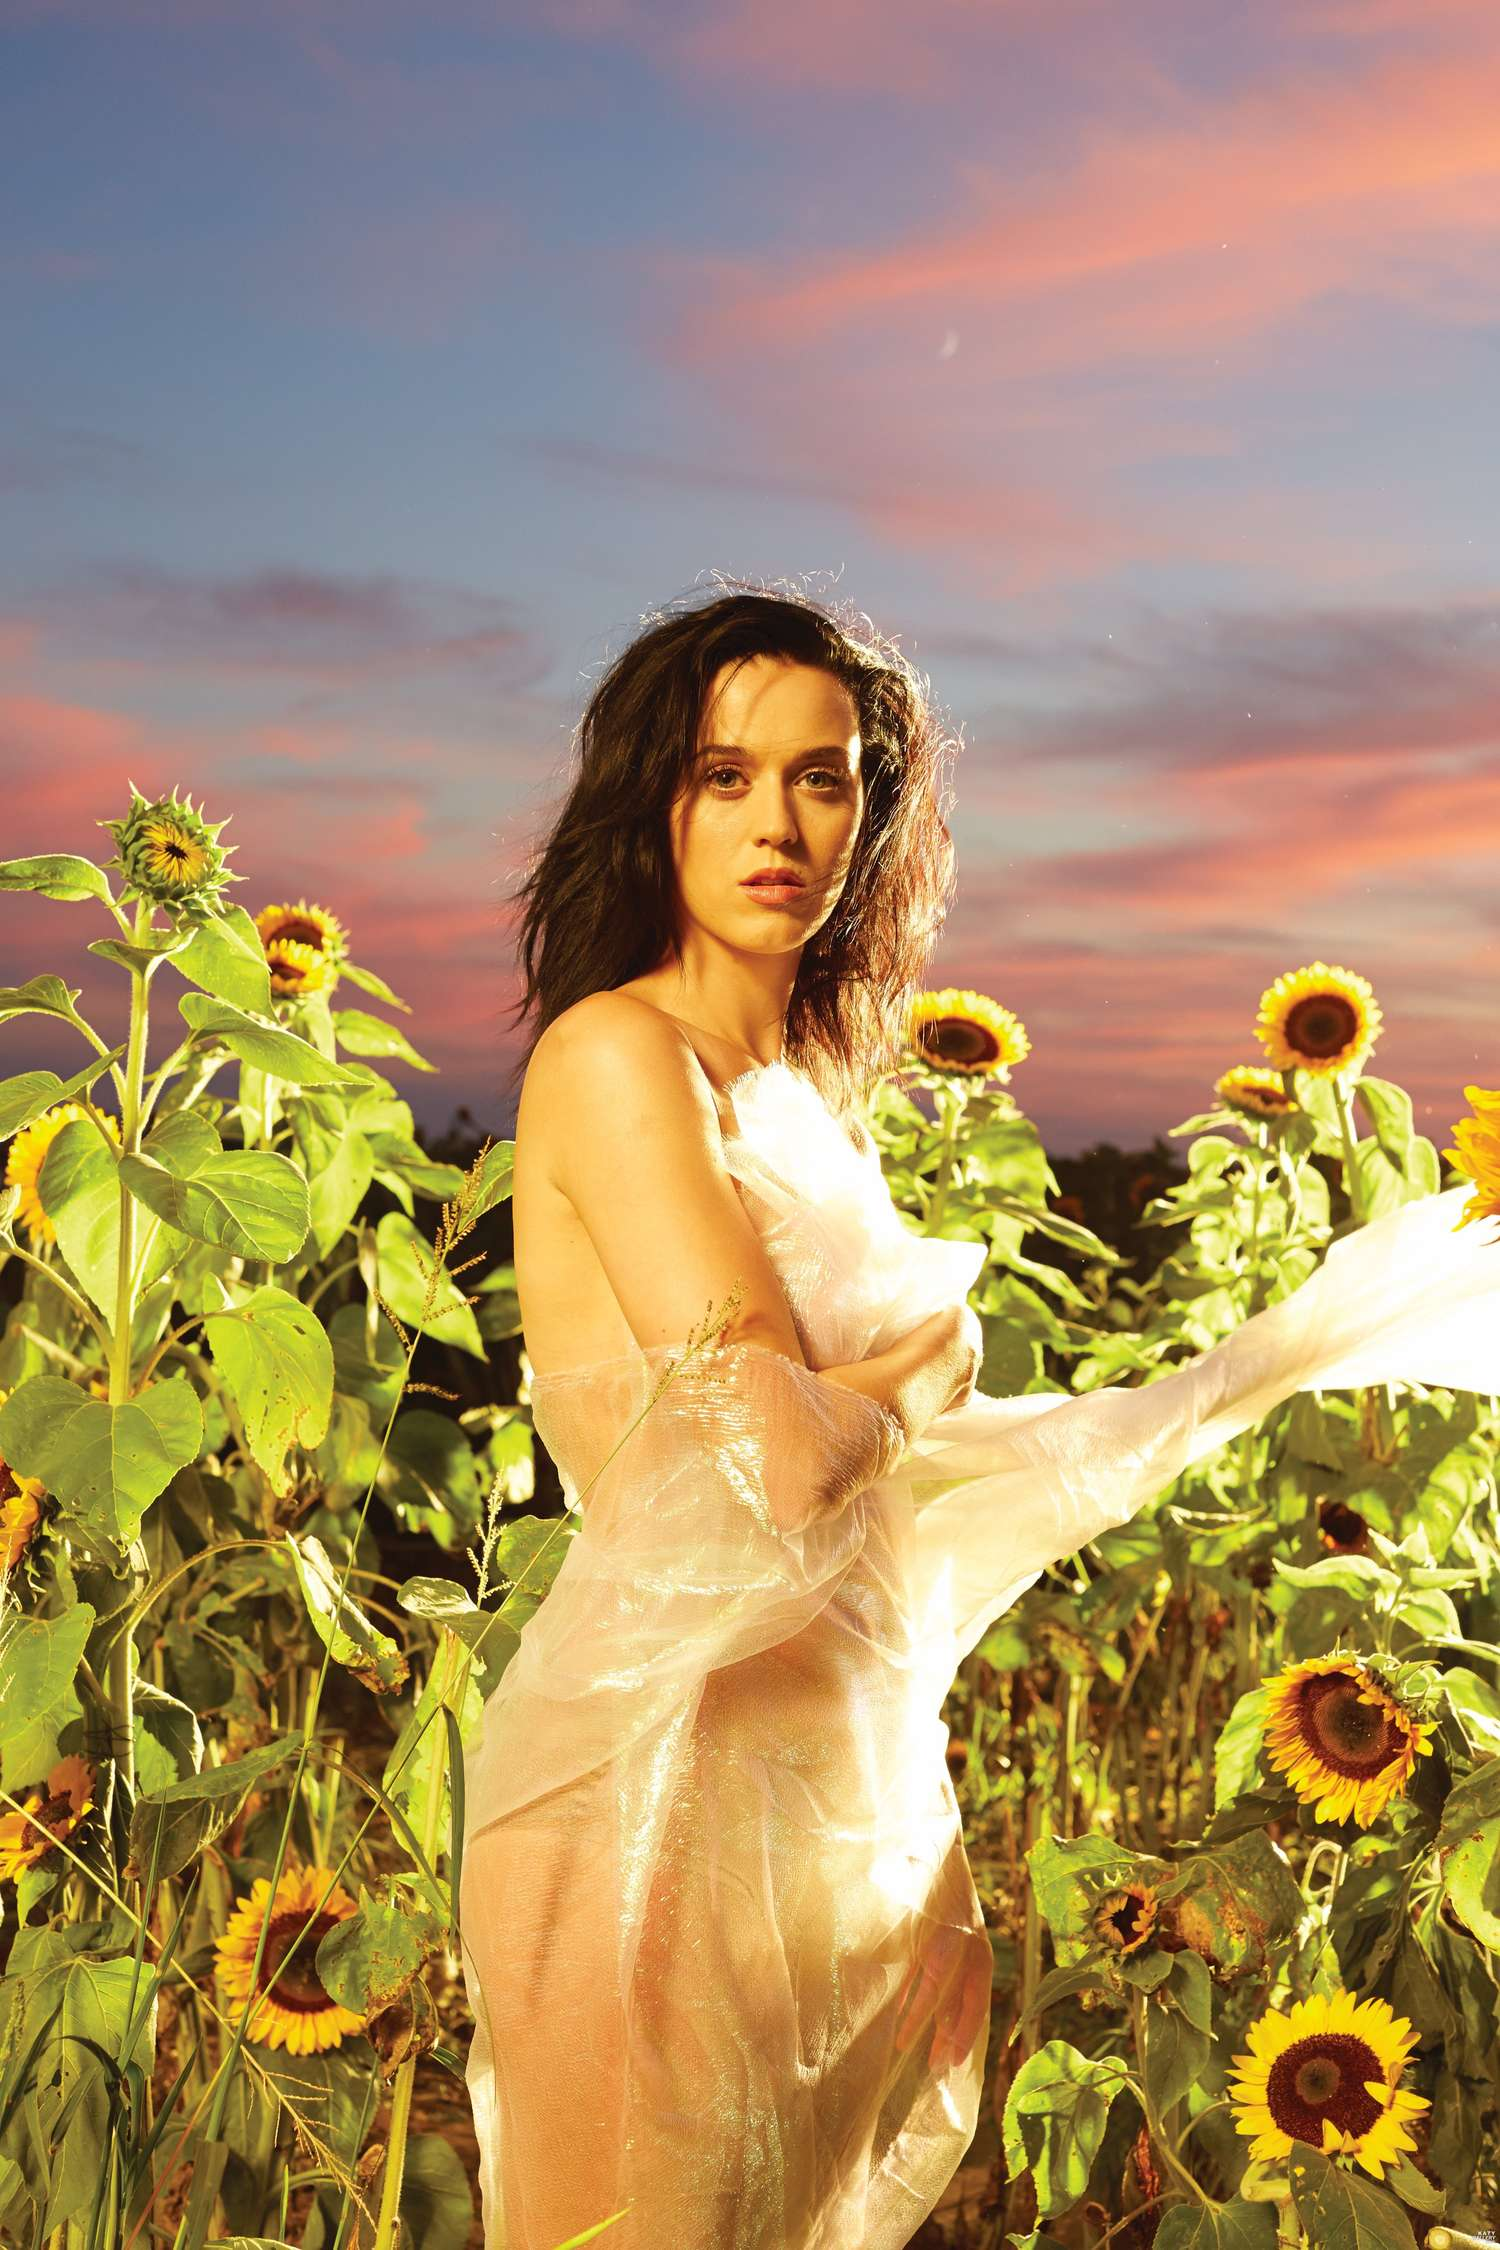 Katy Perry Prism Photoshoot : perry, prism, photoshoot, Perry, Prism, Album, Photoshoot, GotCeleb